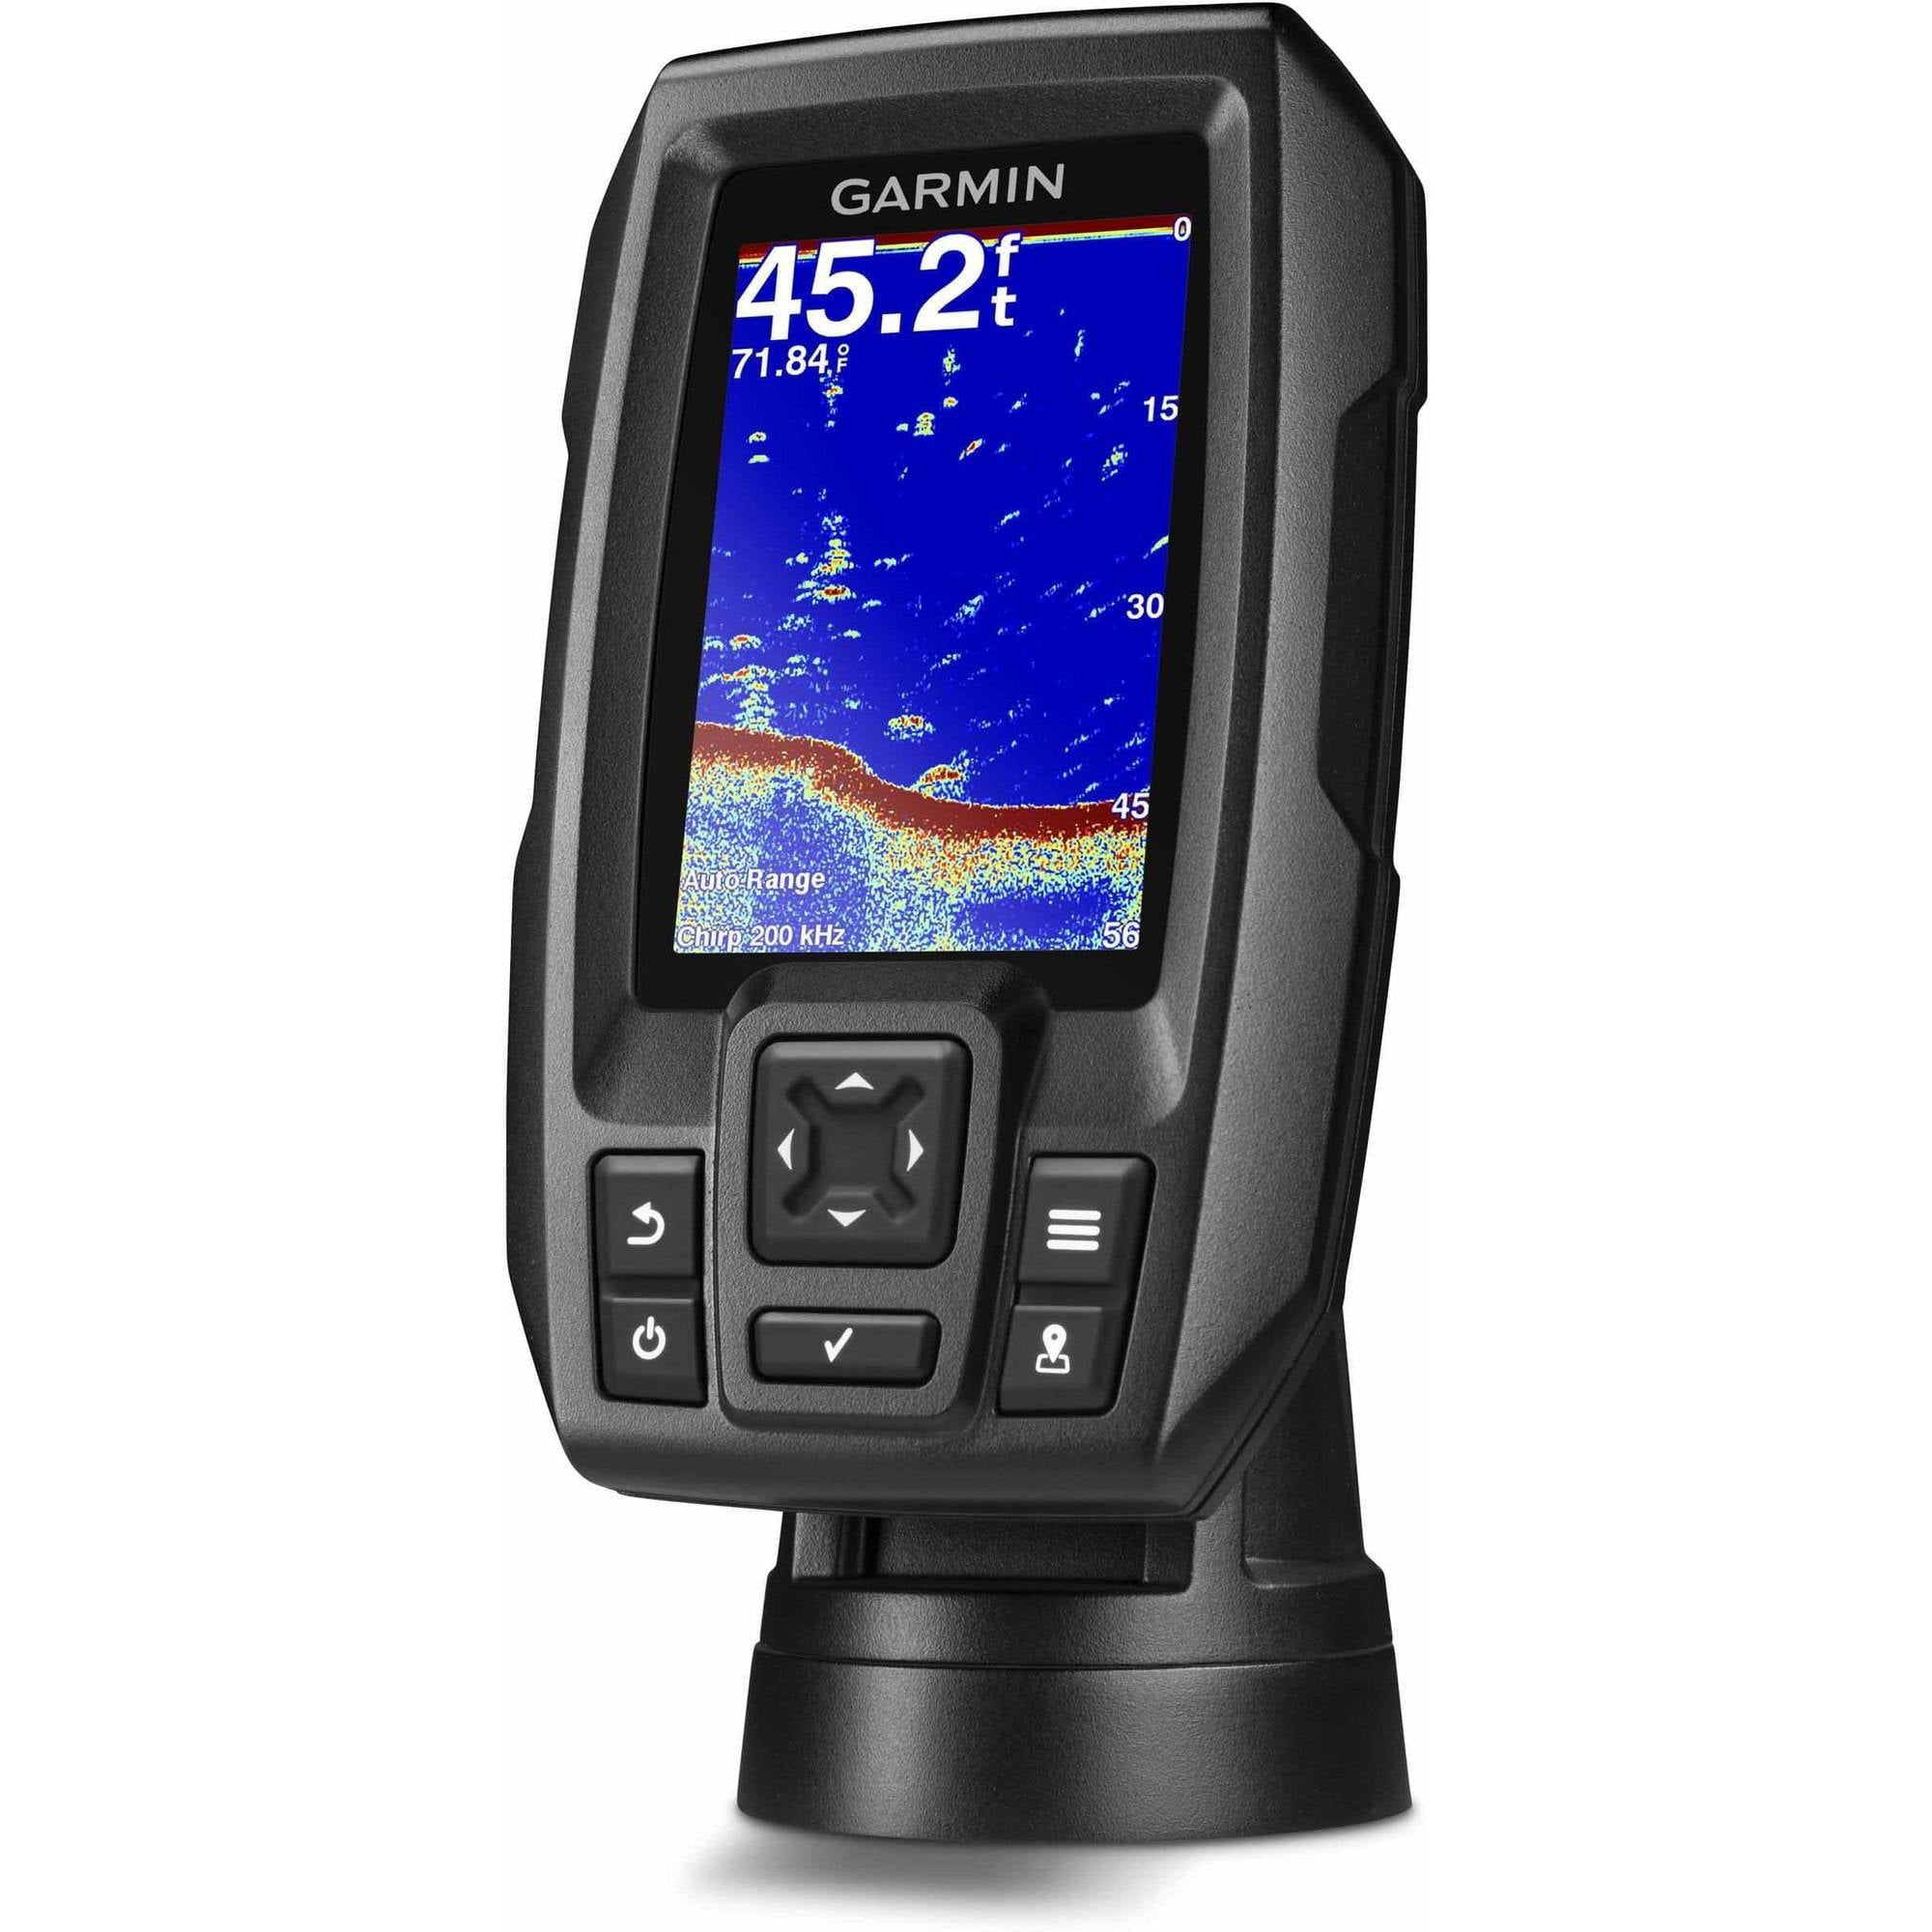 86a9c3a4 e39b 4aed 8b7b b0cb85b411d9_1.768396244e5e27694b2099d589446e95 garmin gps and depth finder localbrush info  at readyjetset.co